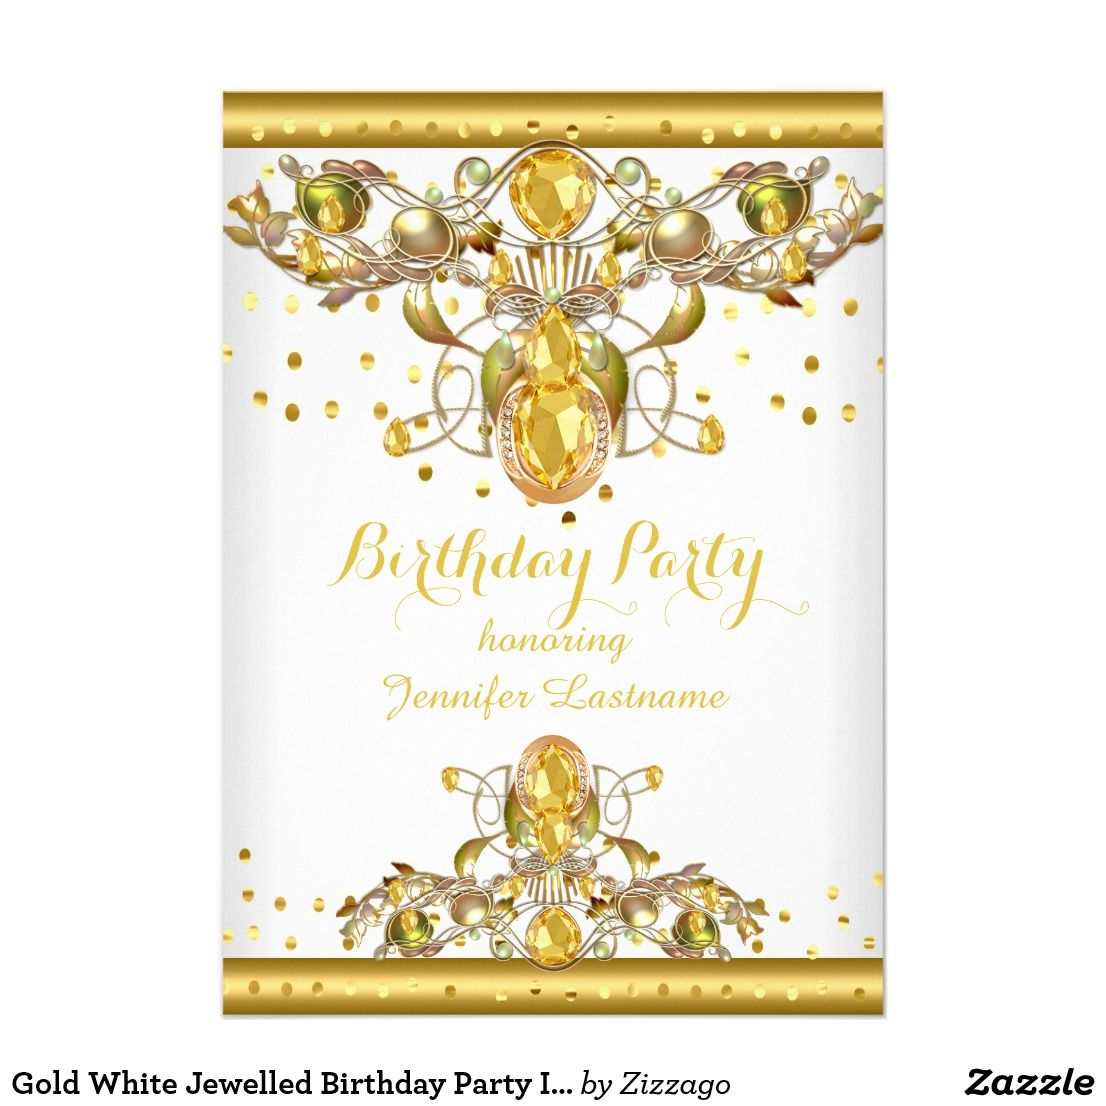 Gold White Jewelled Birthday Party Invitation 2 Sweet 16 Party